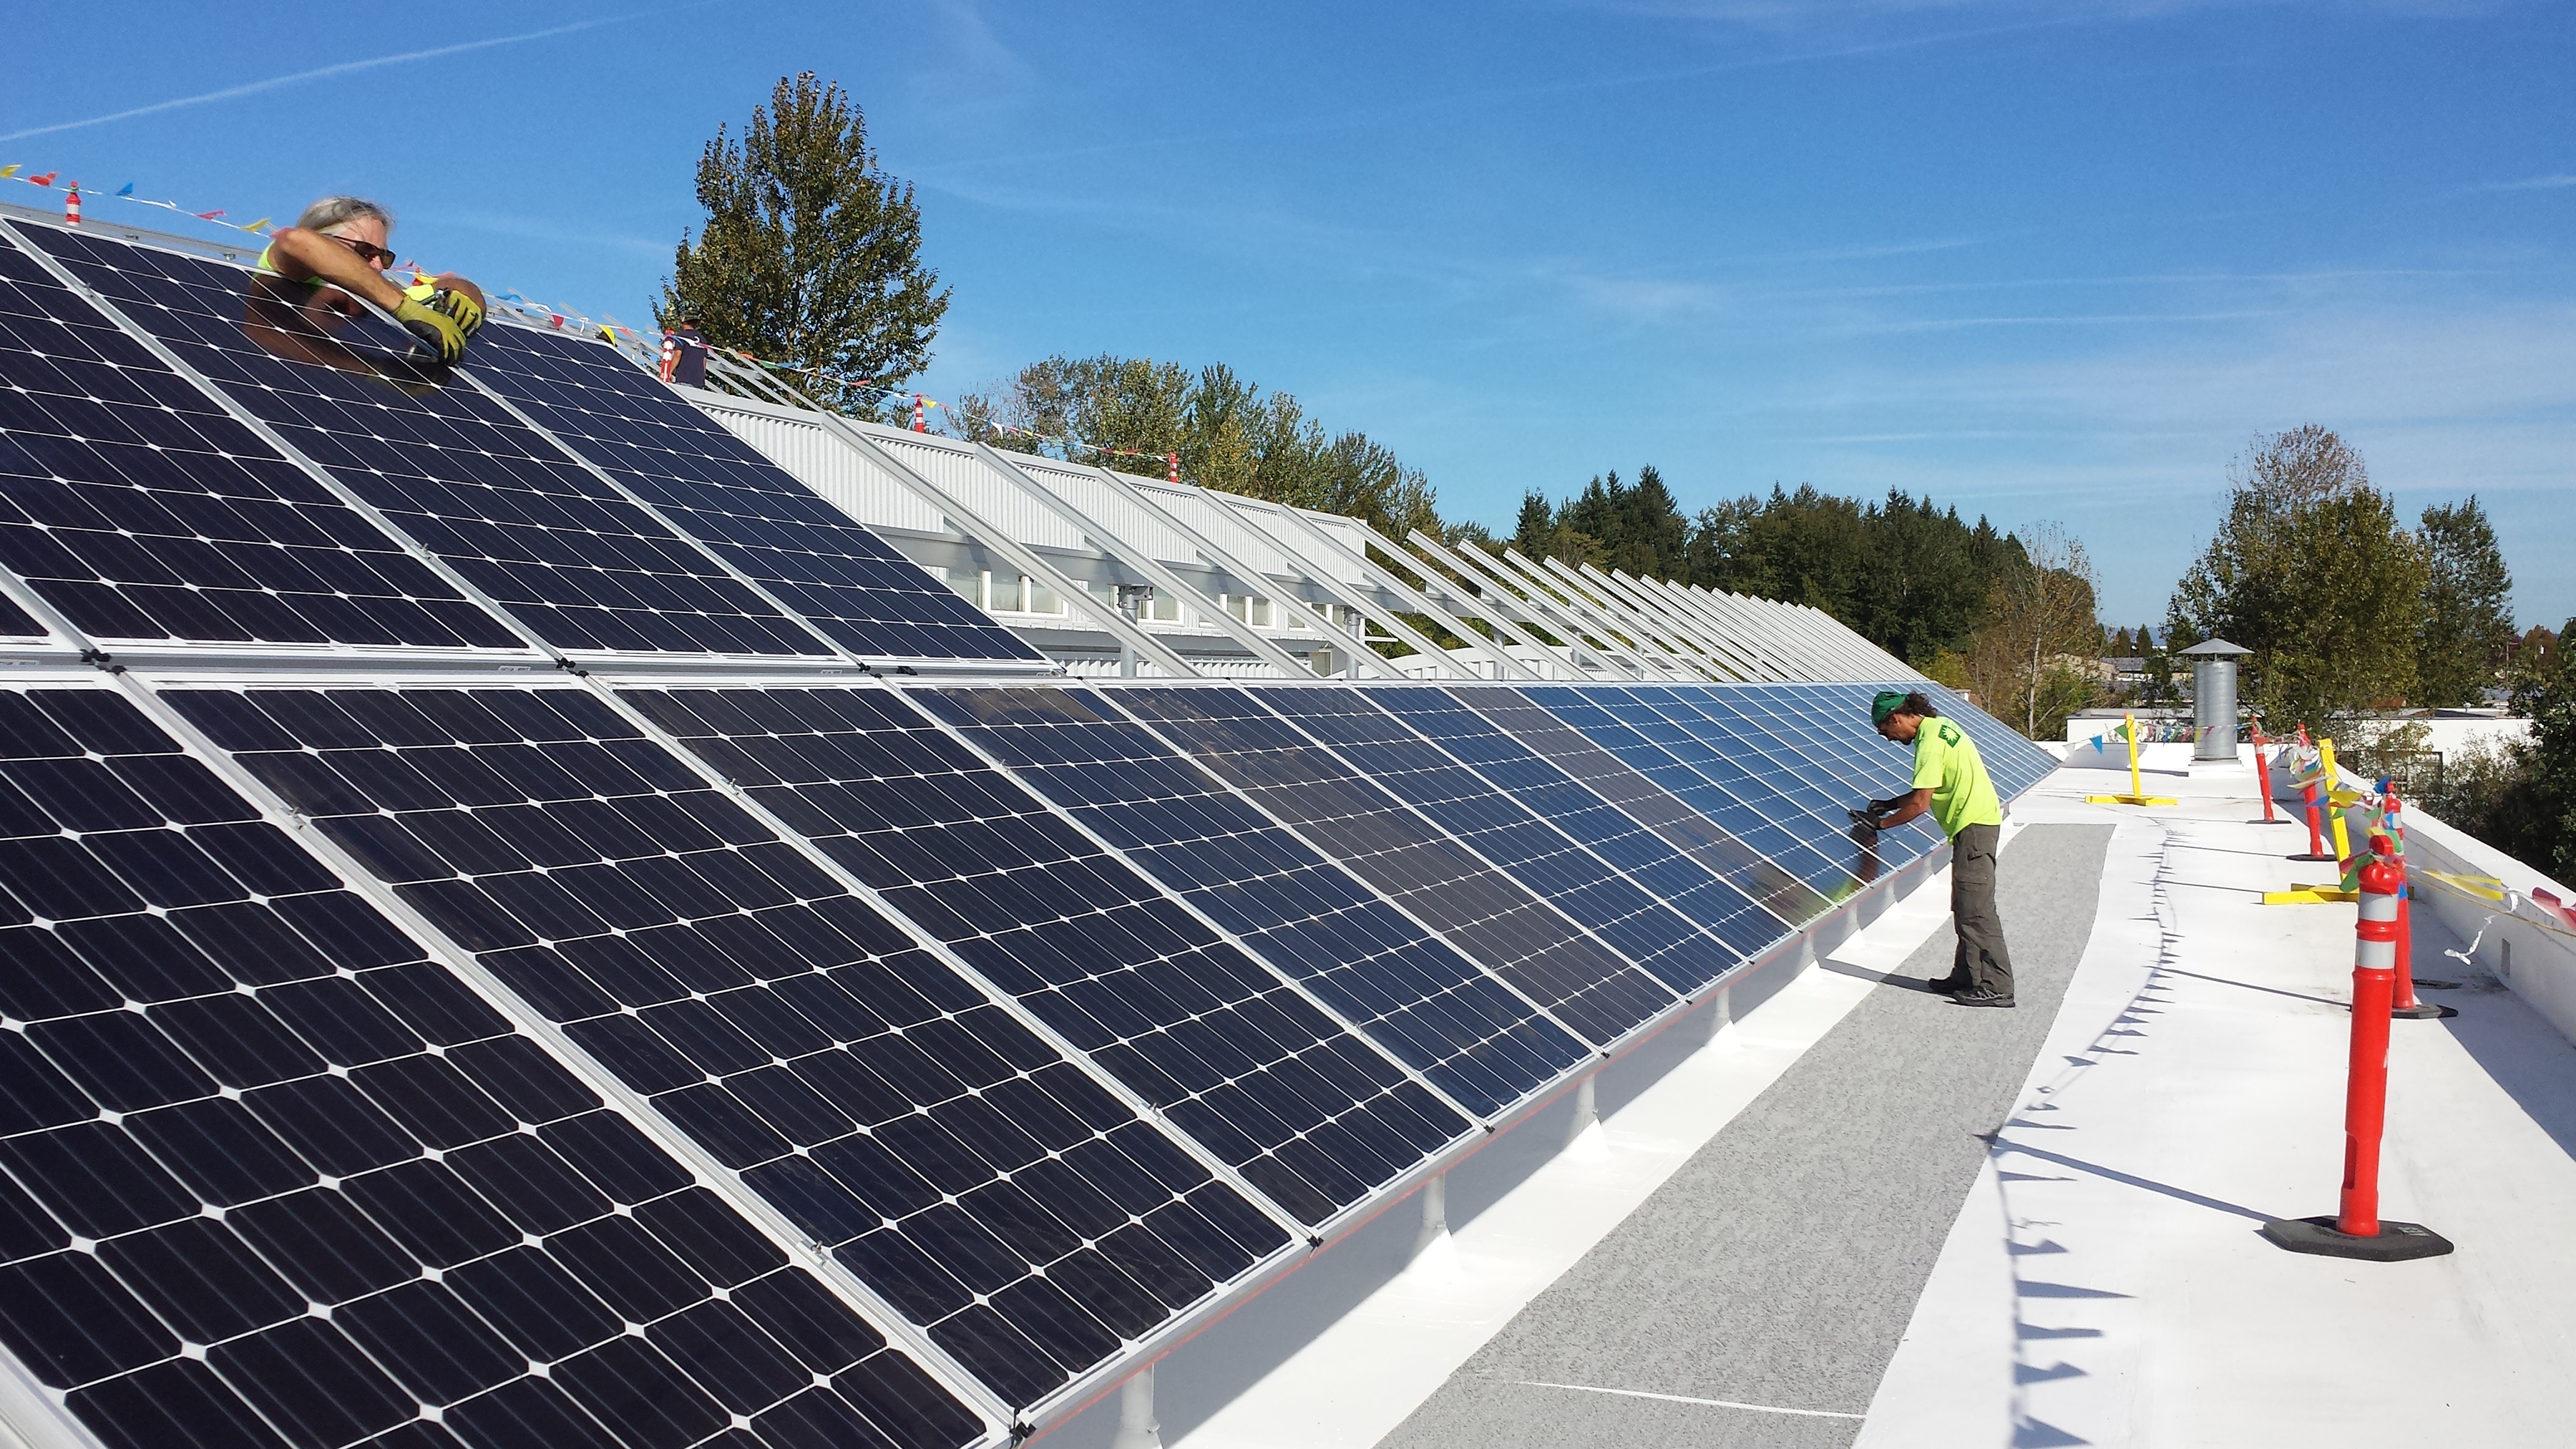 Long rows of solar panels are installed at a LEED certified building in Oregon.